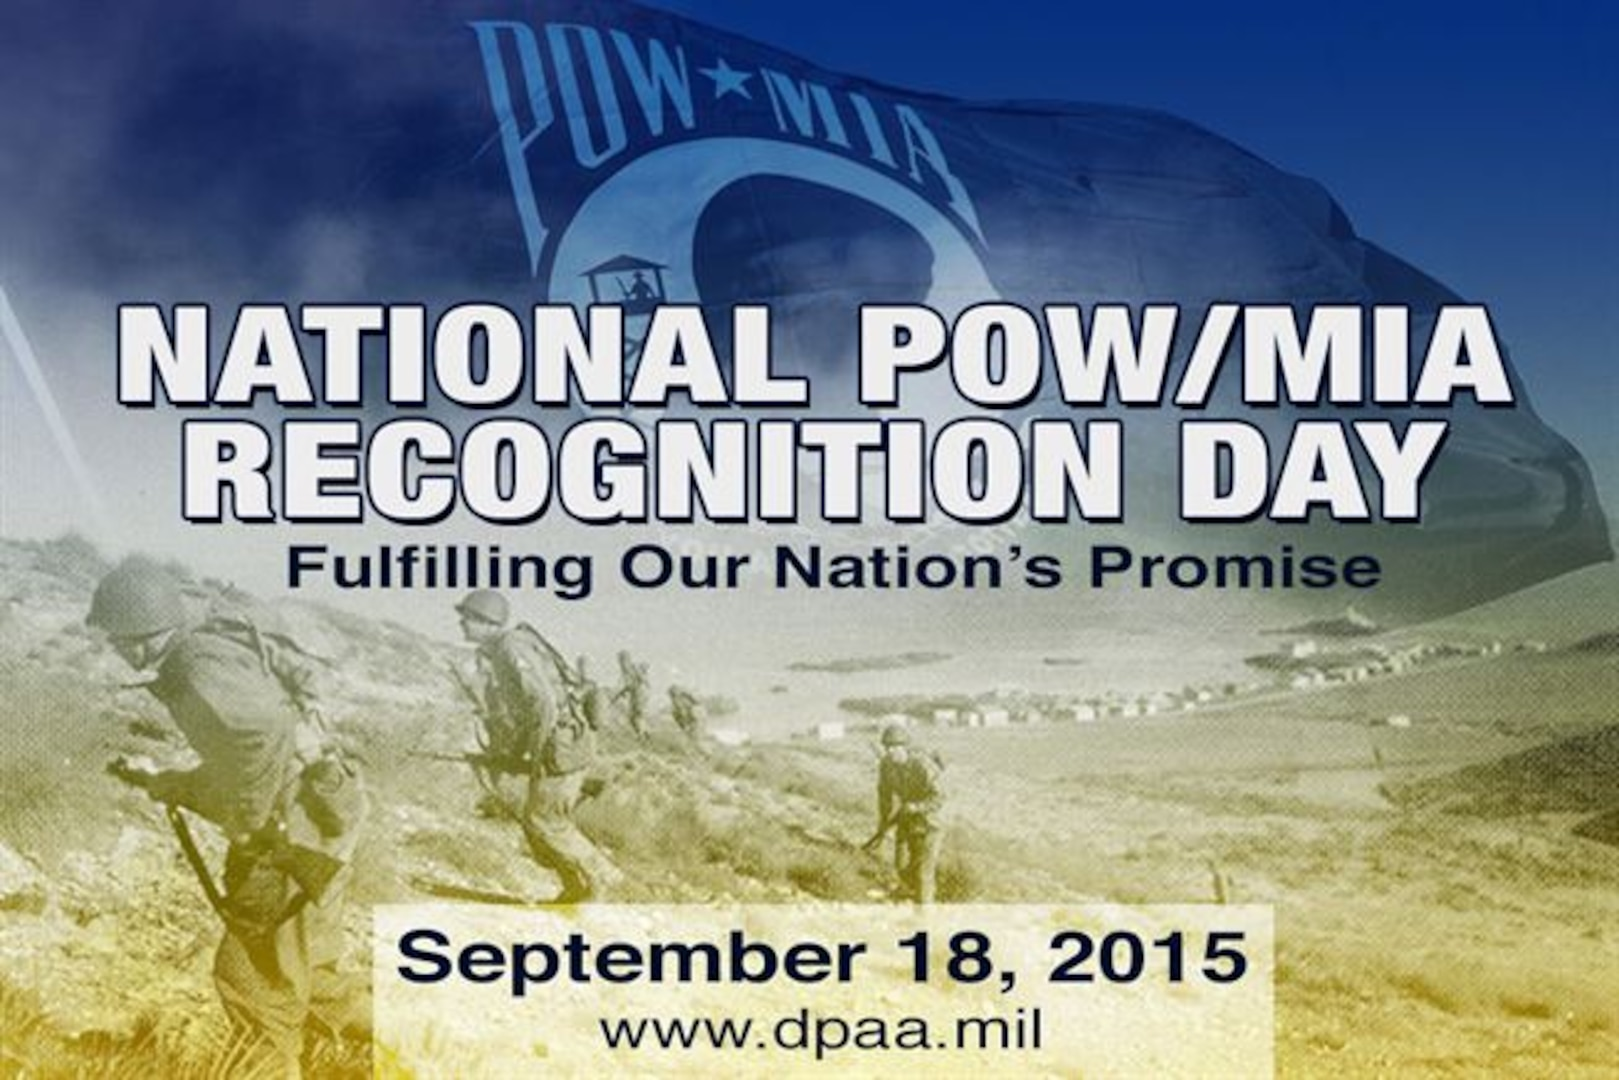 NATIONAL POW/MIA RECOGNITION DAY 2015